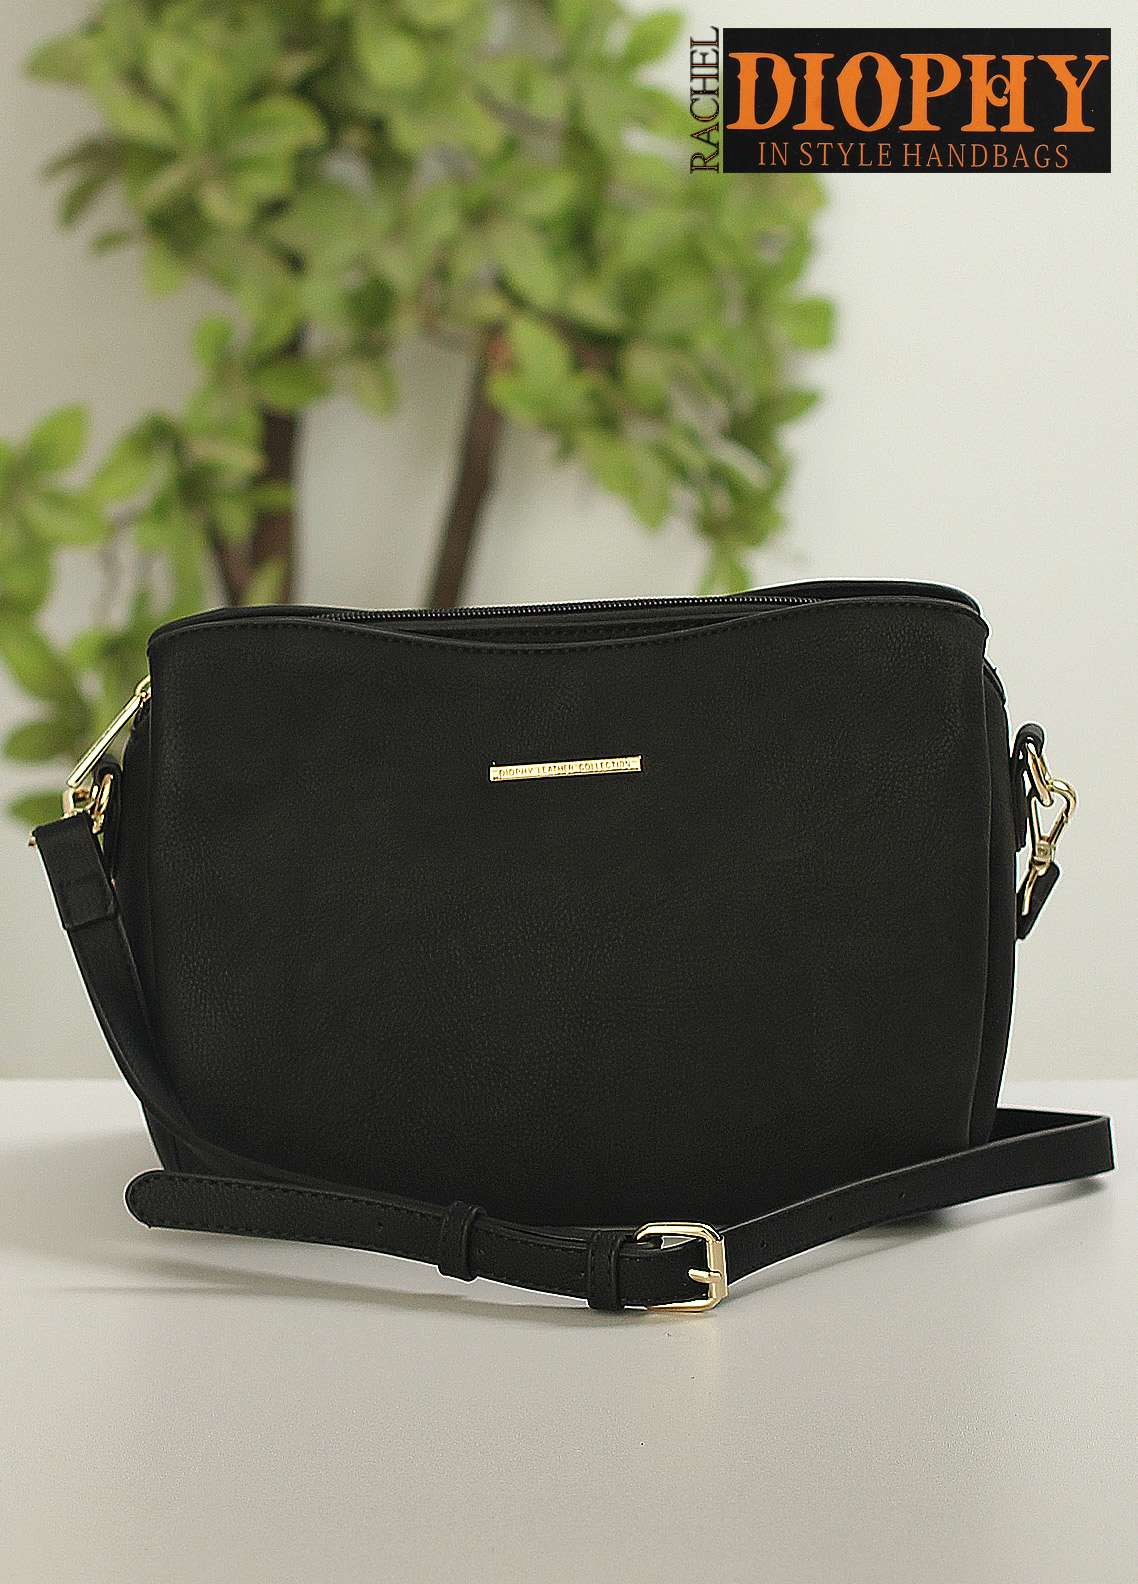 Rachel Diophy PU Leather Shoulder Bags for Women - Black with Plain Textured